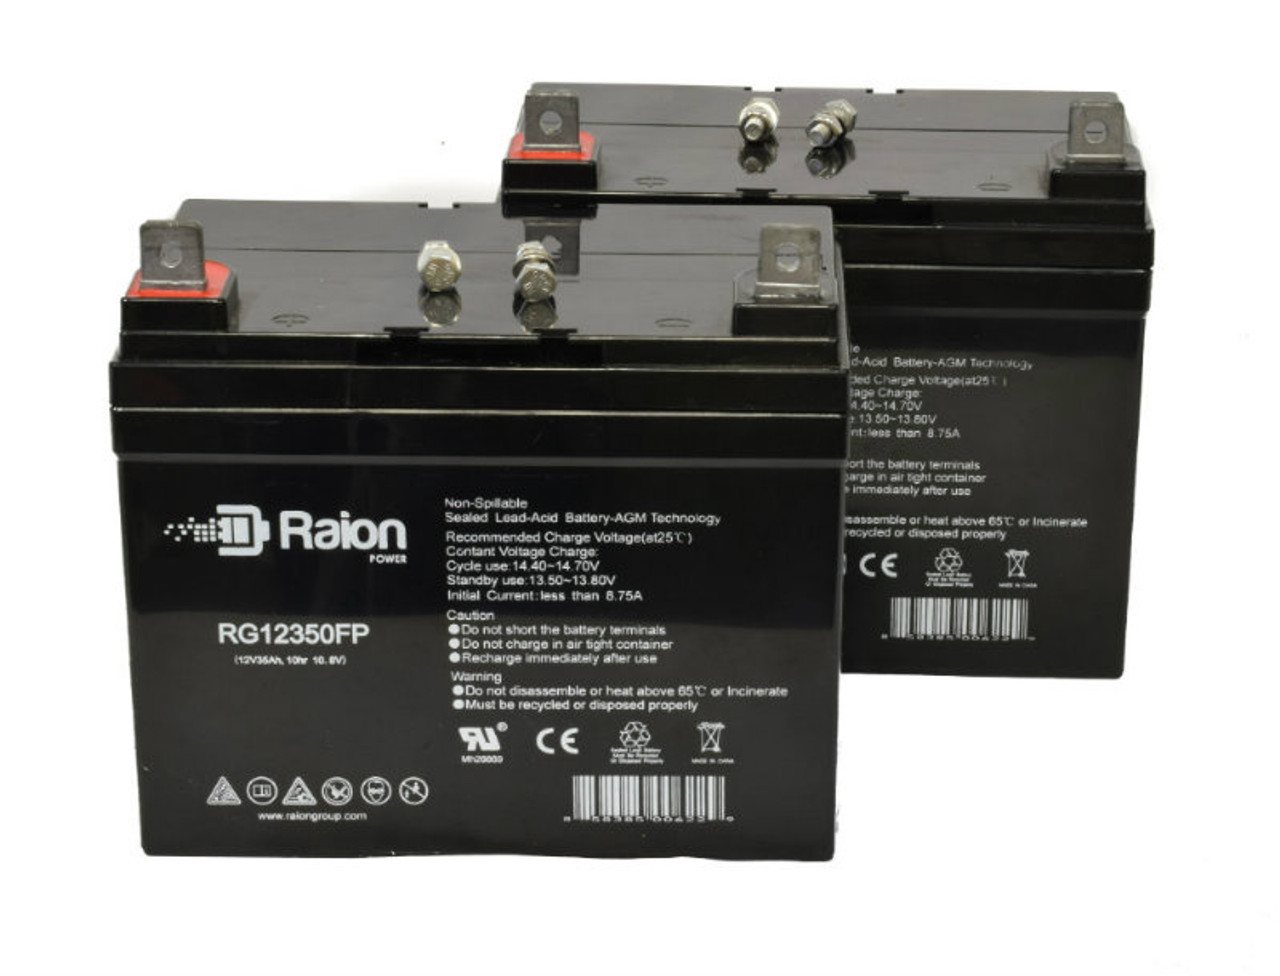 Raion Power RG12350FP Replacement Wheelchair Battery For Electric Mobility Rascal 309LE Candy Apple (2 Pack)